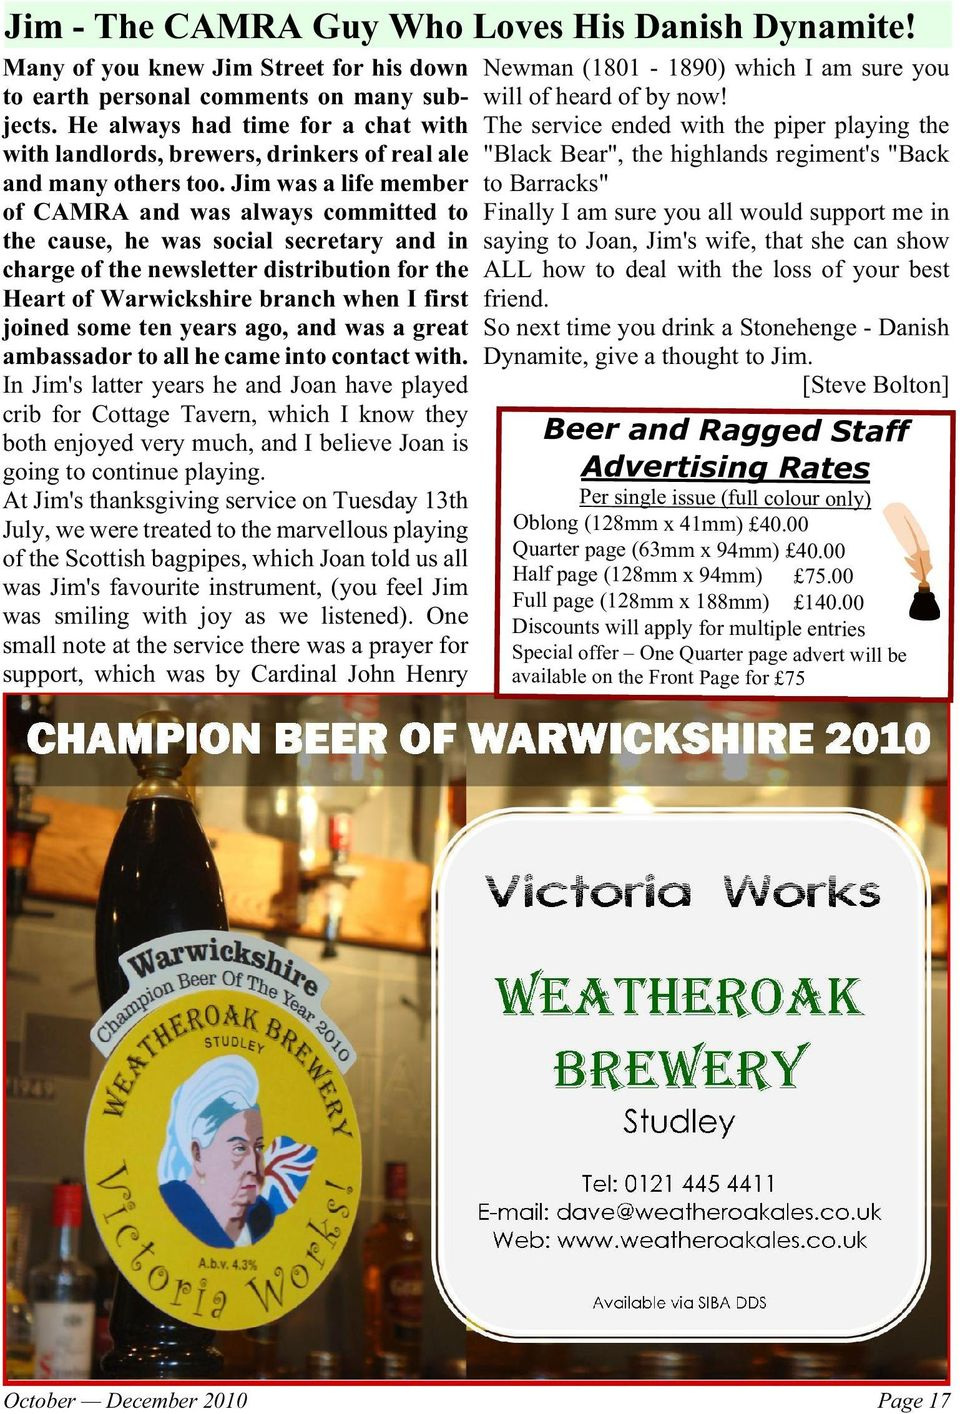 Jim was a life member of CAMRA and was always committed to the cause, he was social secretary and in charge of the newsletter distribution for the Heart of Warwickshire branch when I first joined